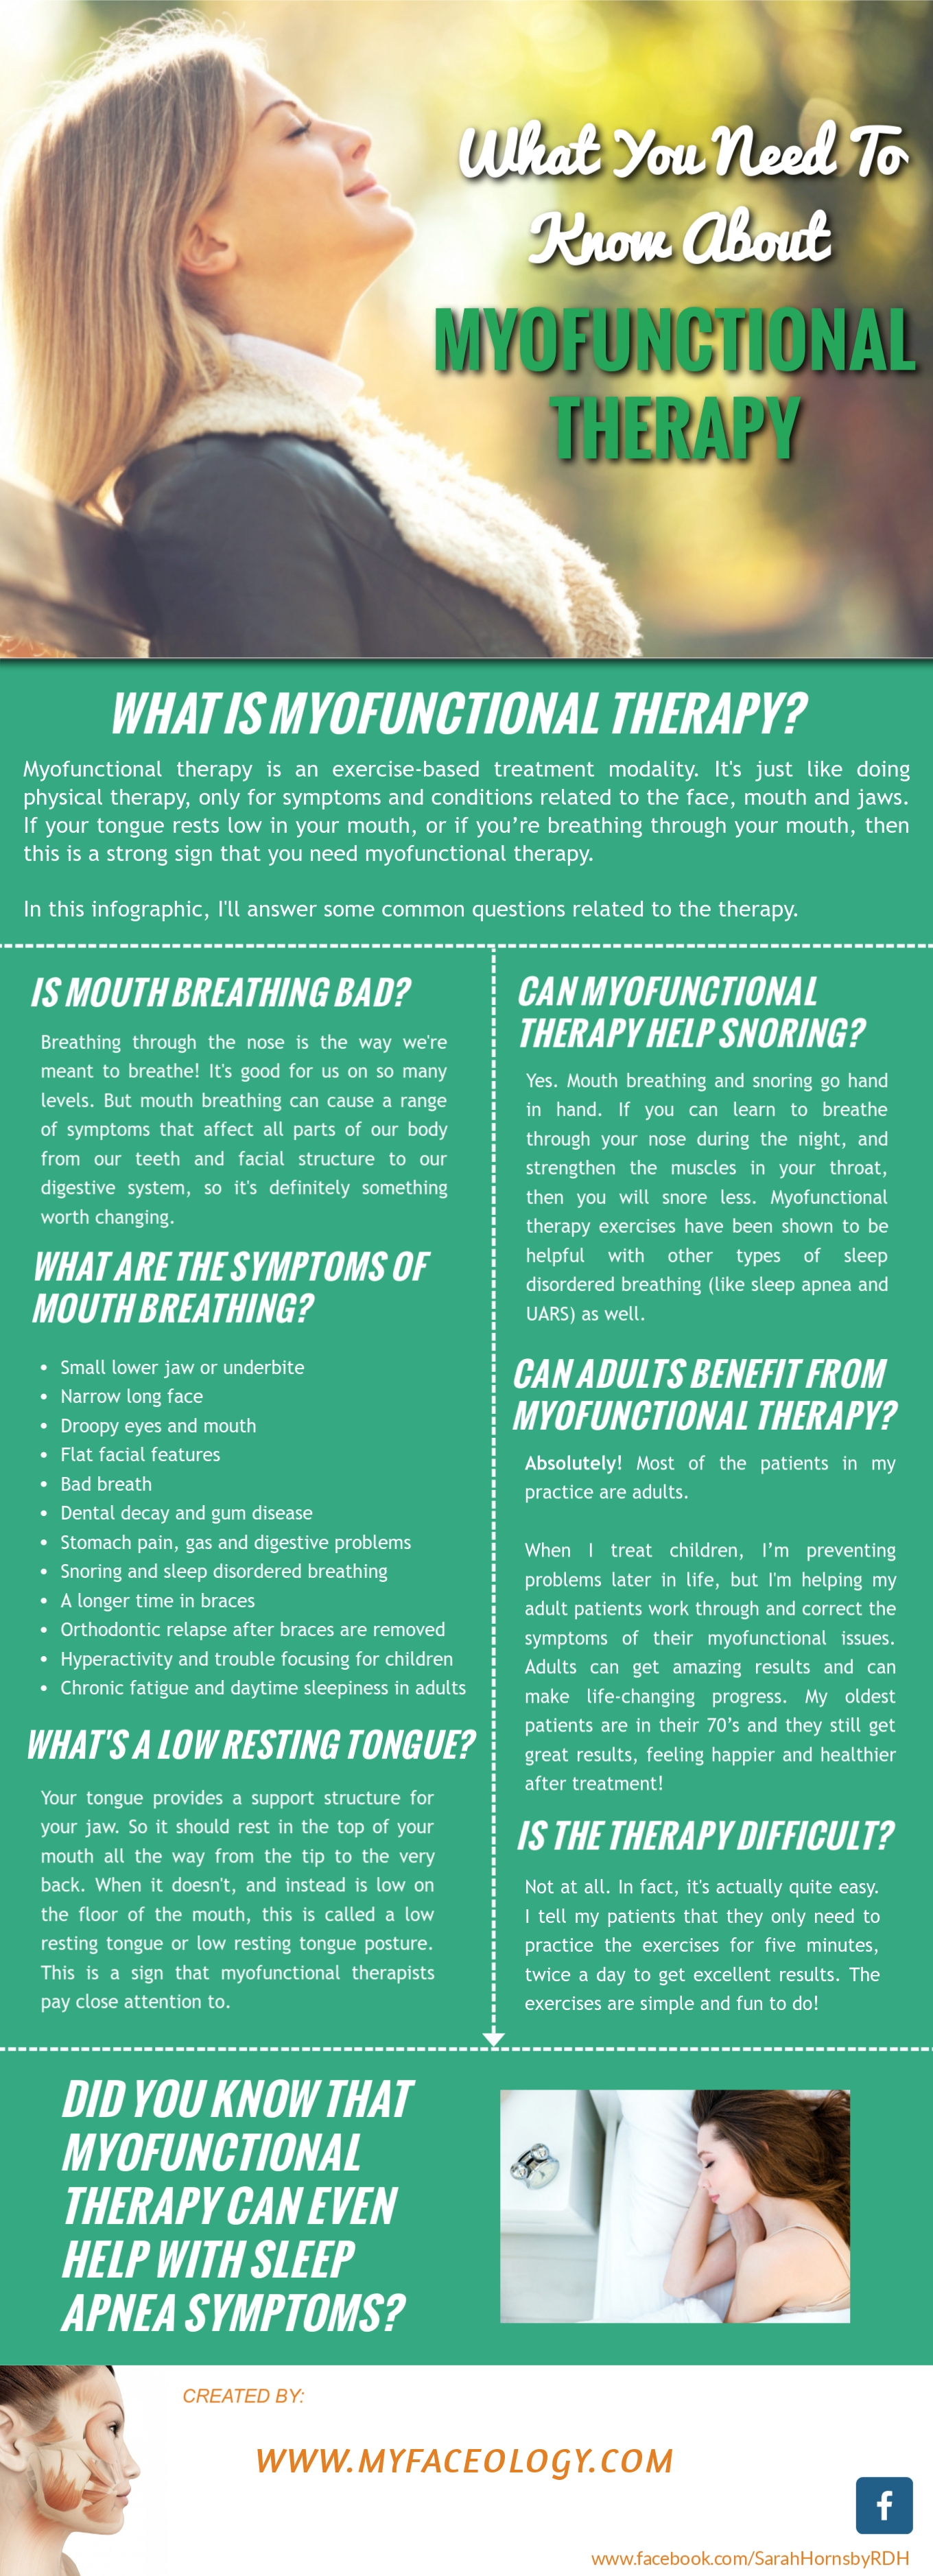 what is myofunctional therapy